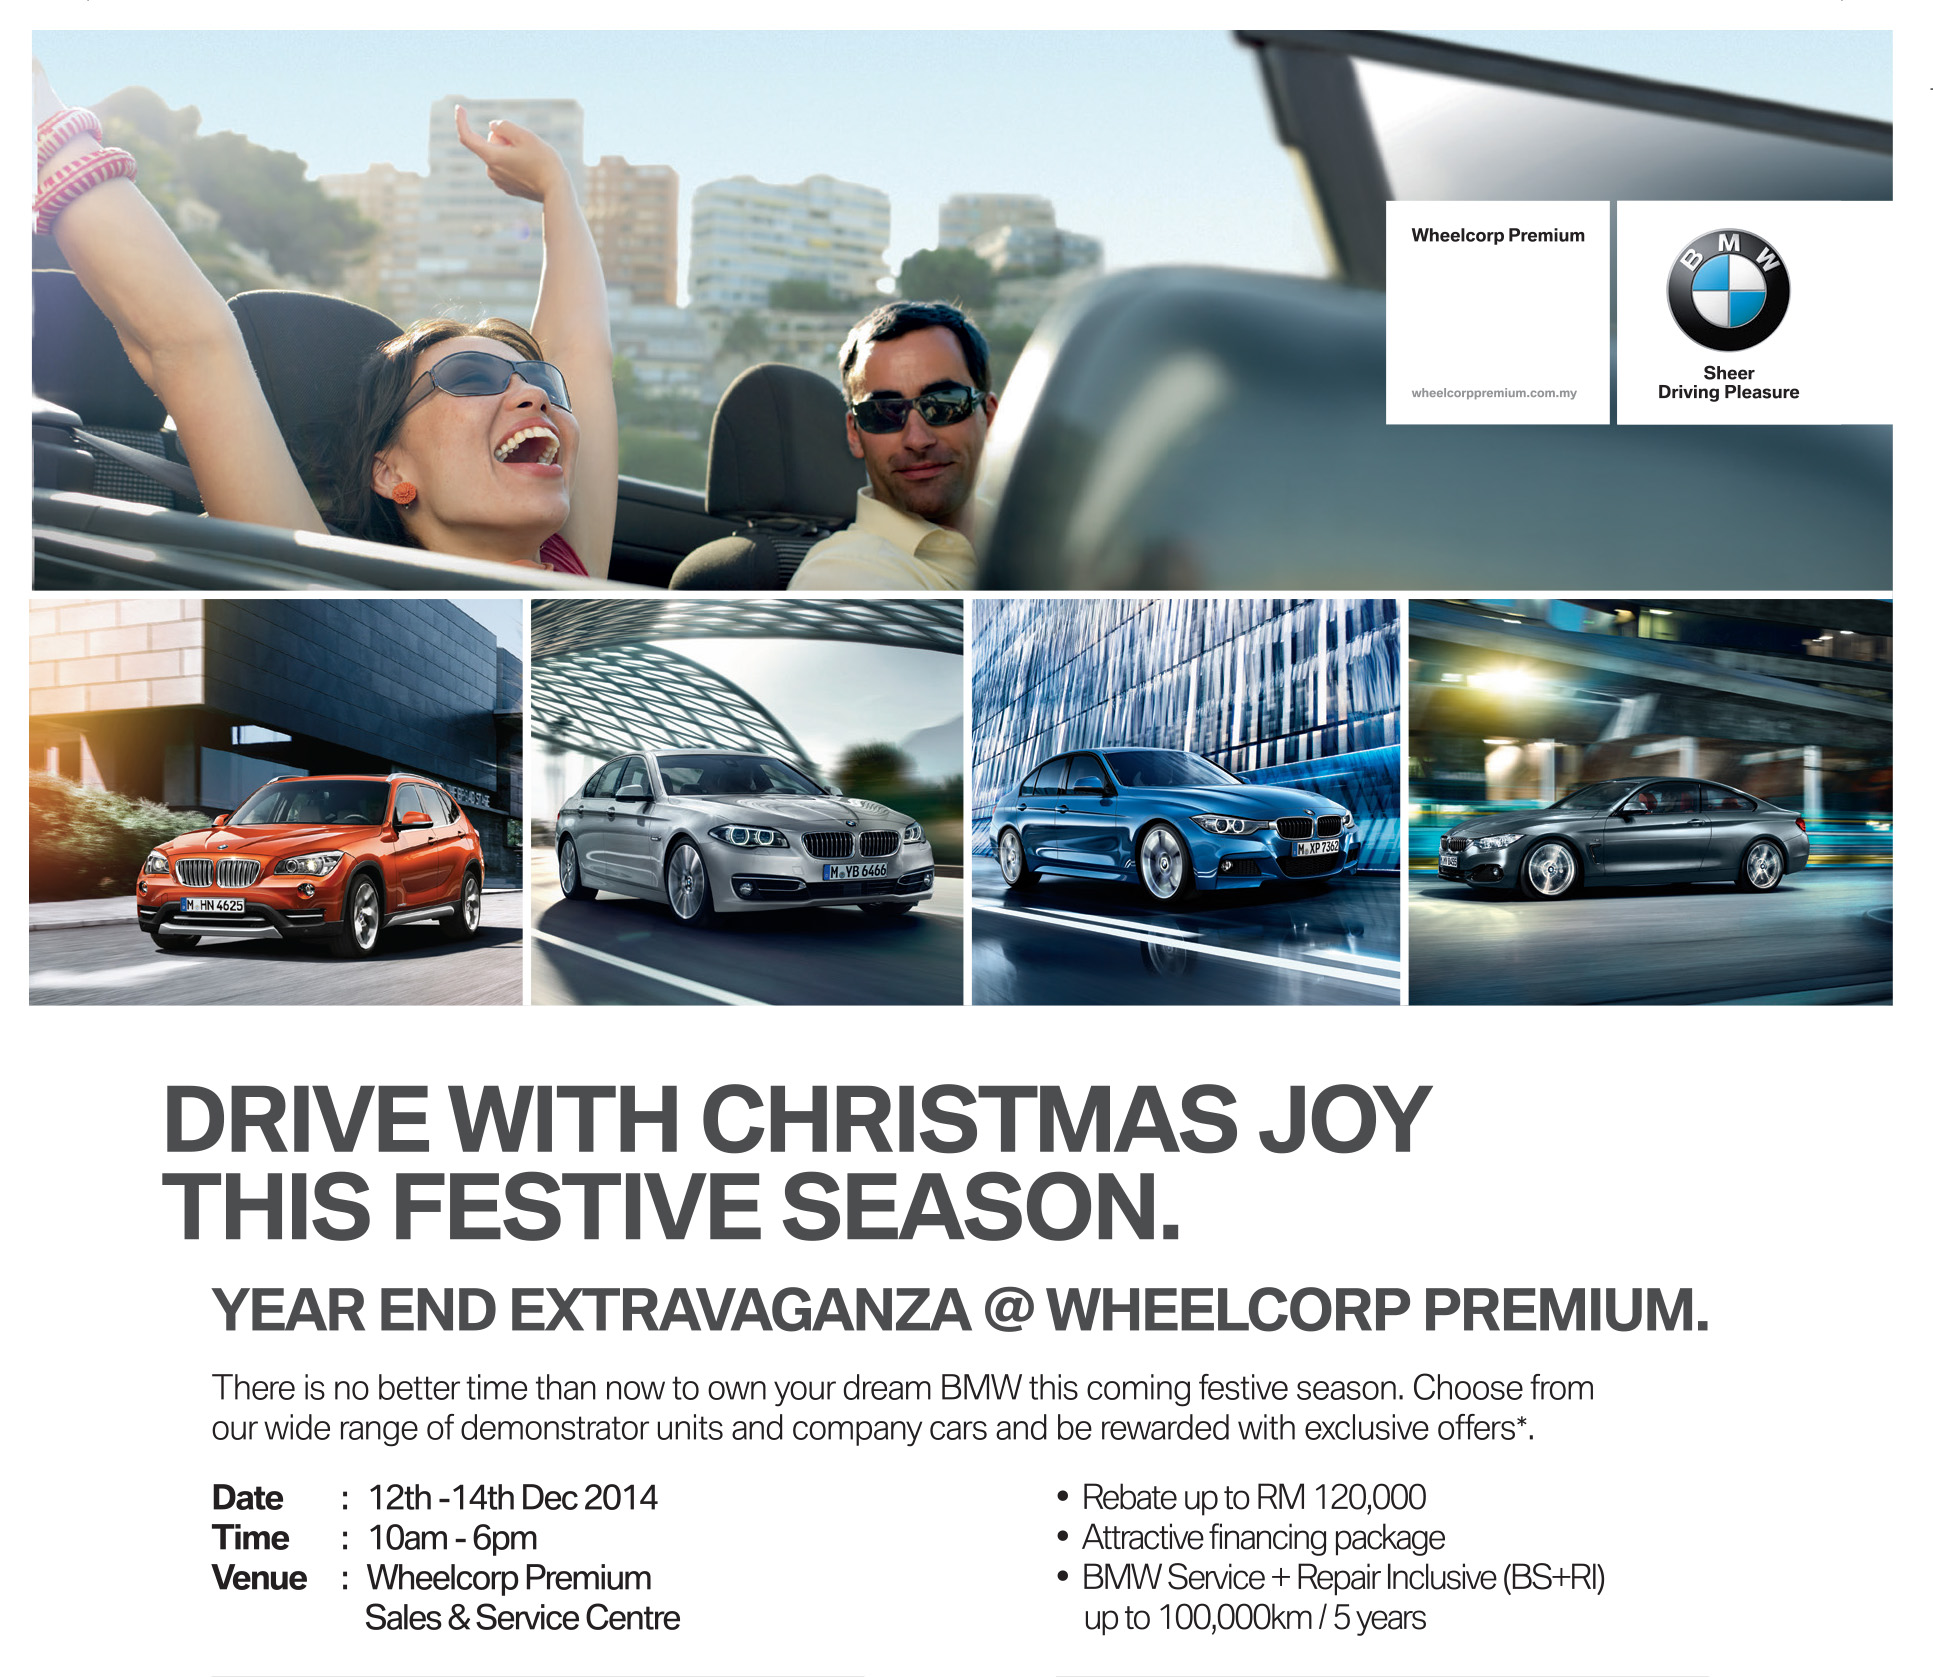 AD: Wheelcorp Extends Premium Christmas Joy With